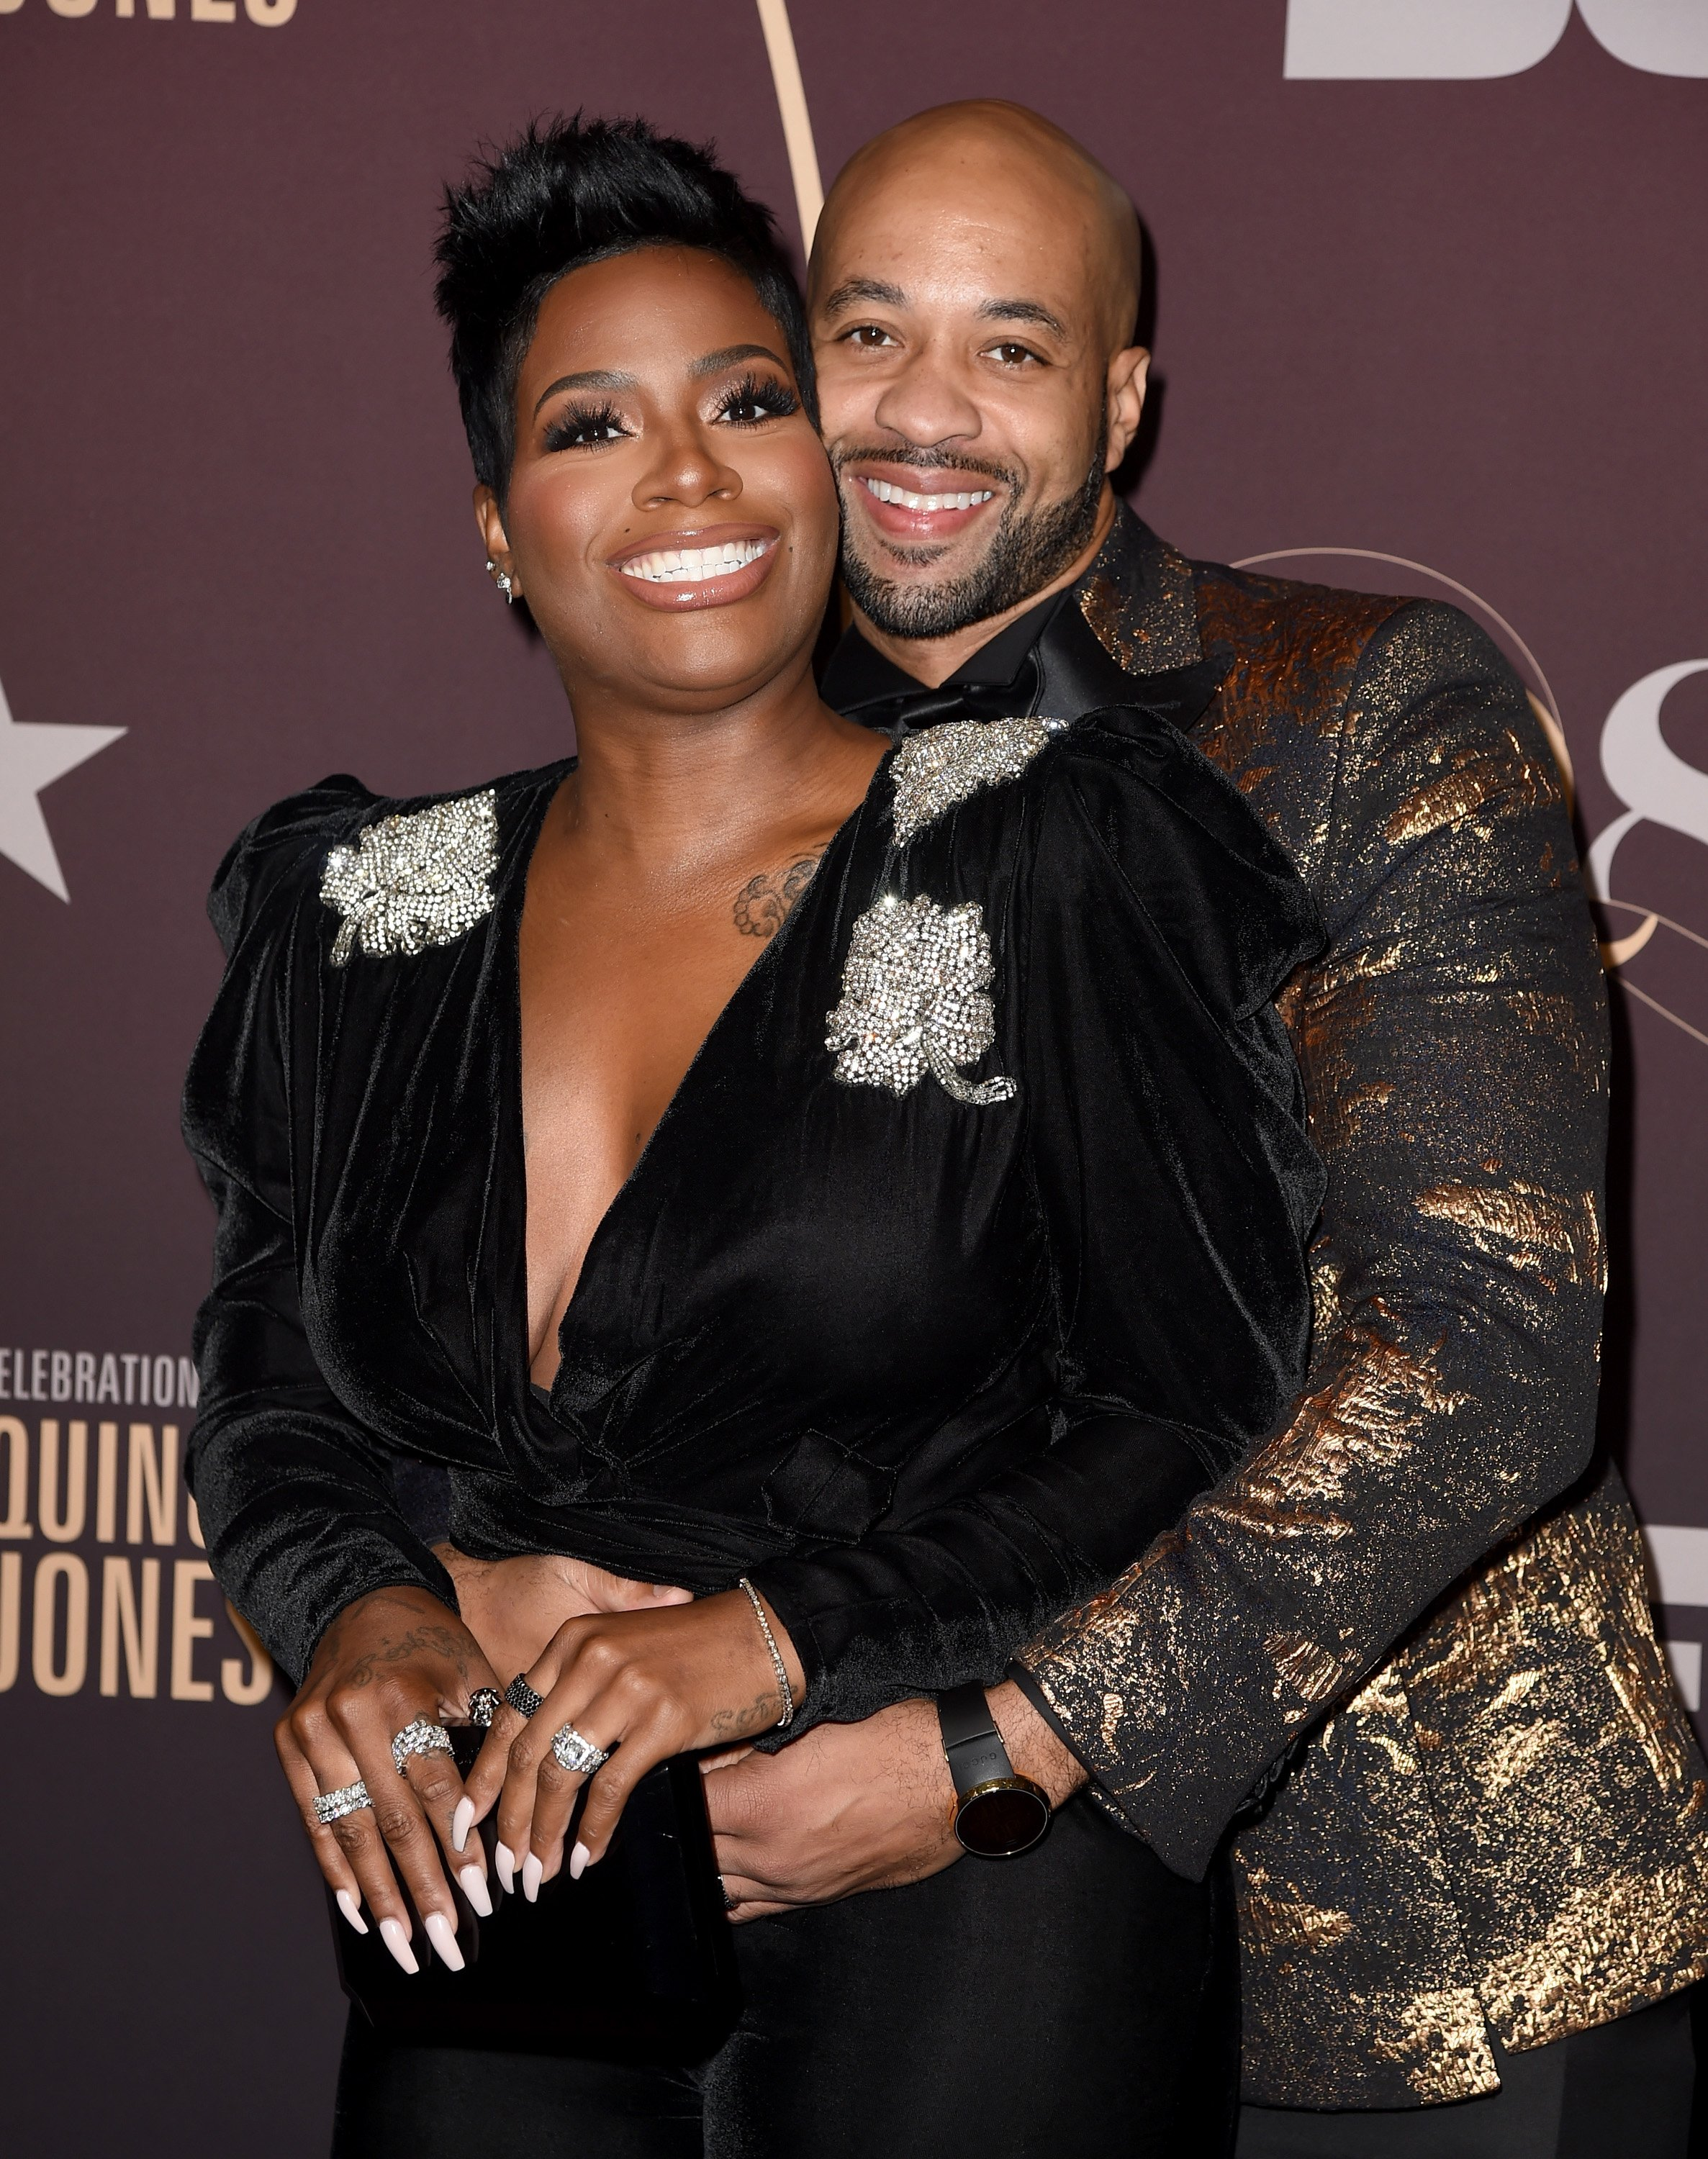 Fantasia Barrino and her husband Kendall Taylor arrive at Q85: A Musical Celebration for Quincy Jones at the Microsoft Theatre on September 25, 2018. | Photo: Getty Images